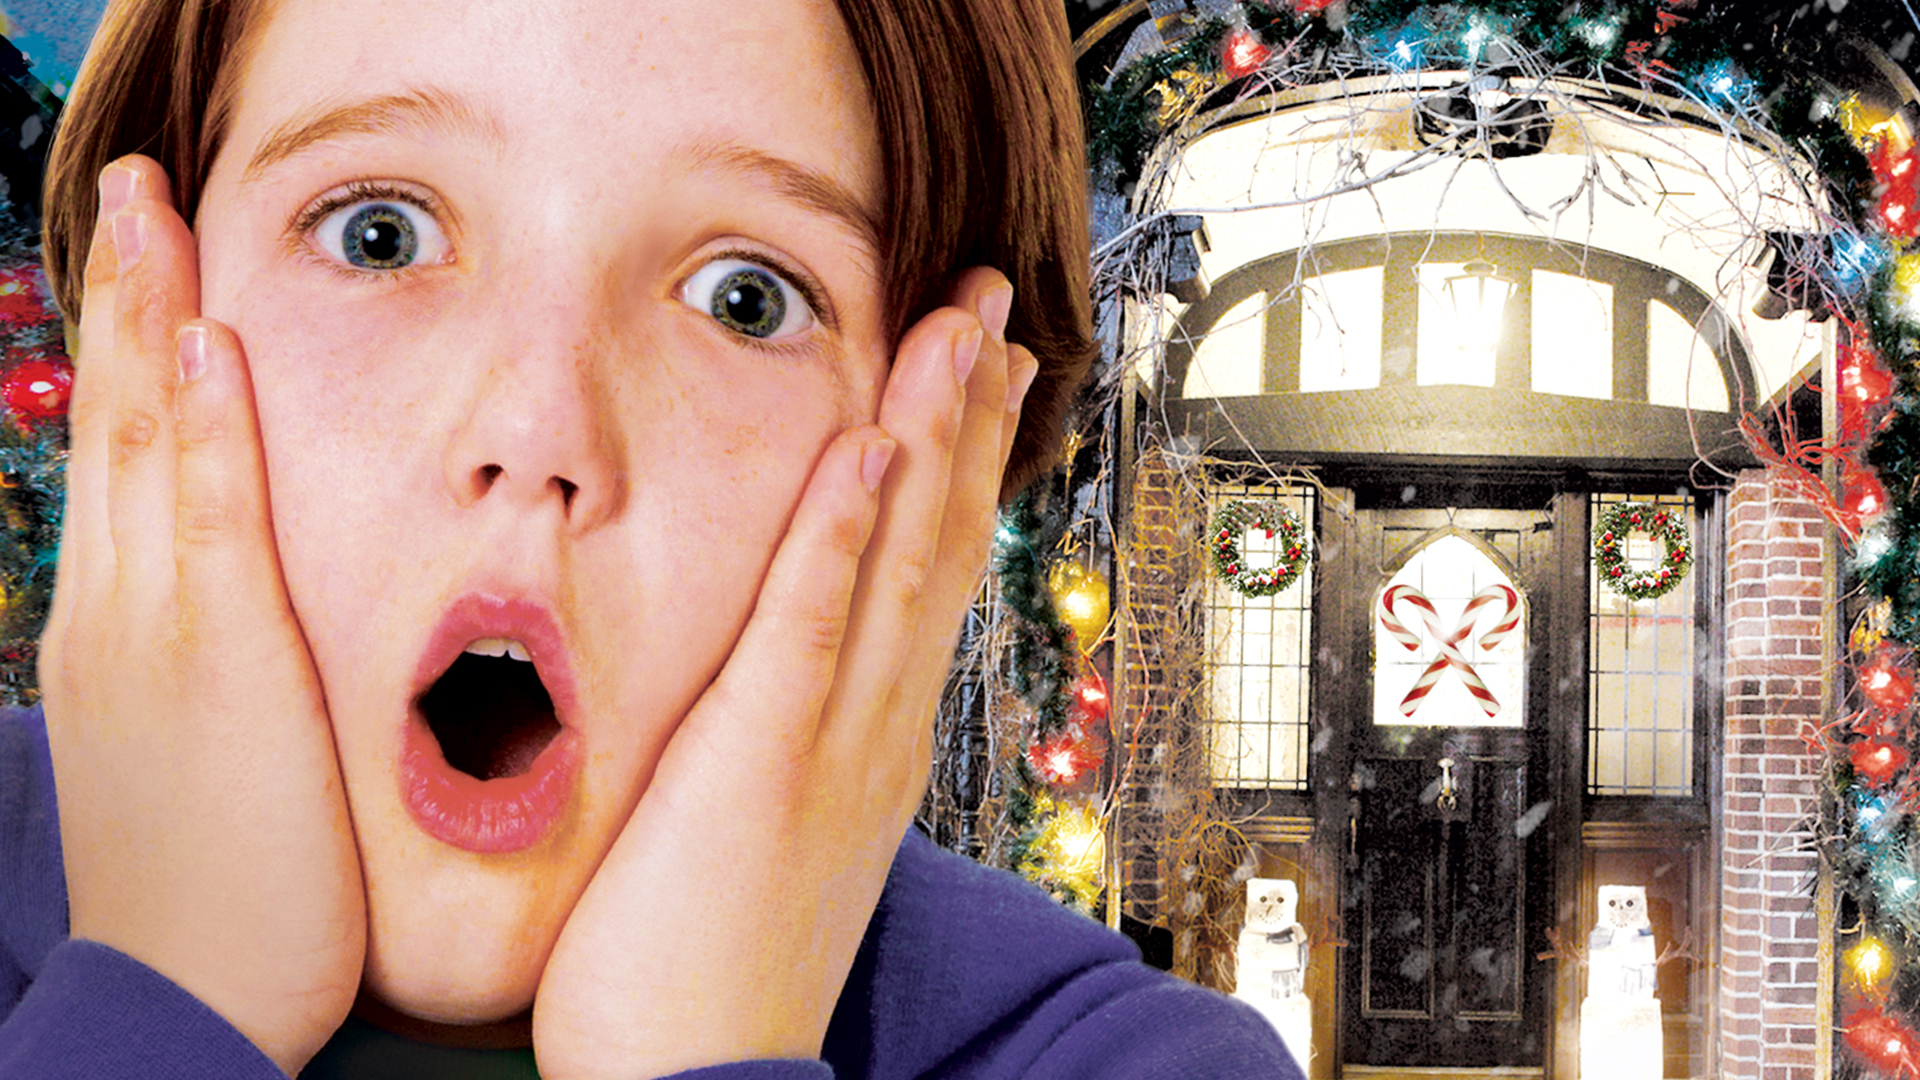 home alone 5 the holiday heist full movie online